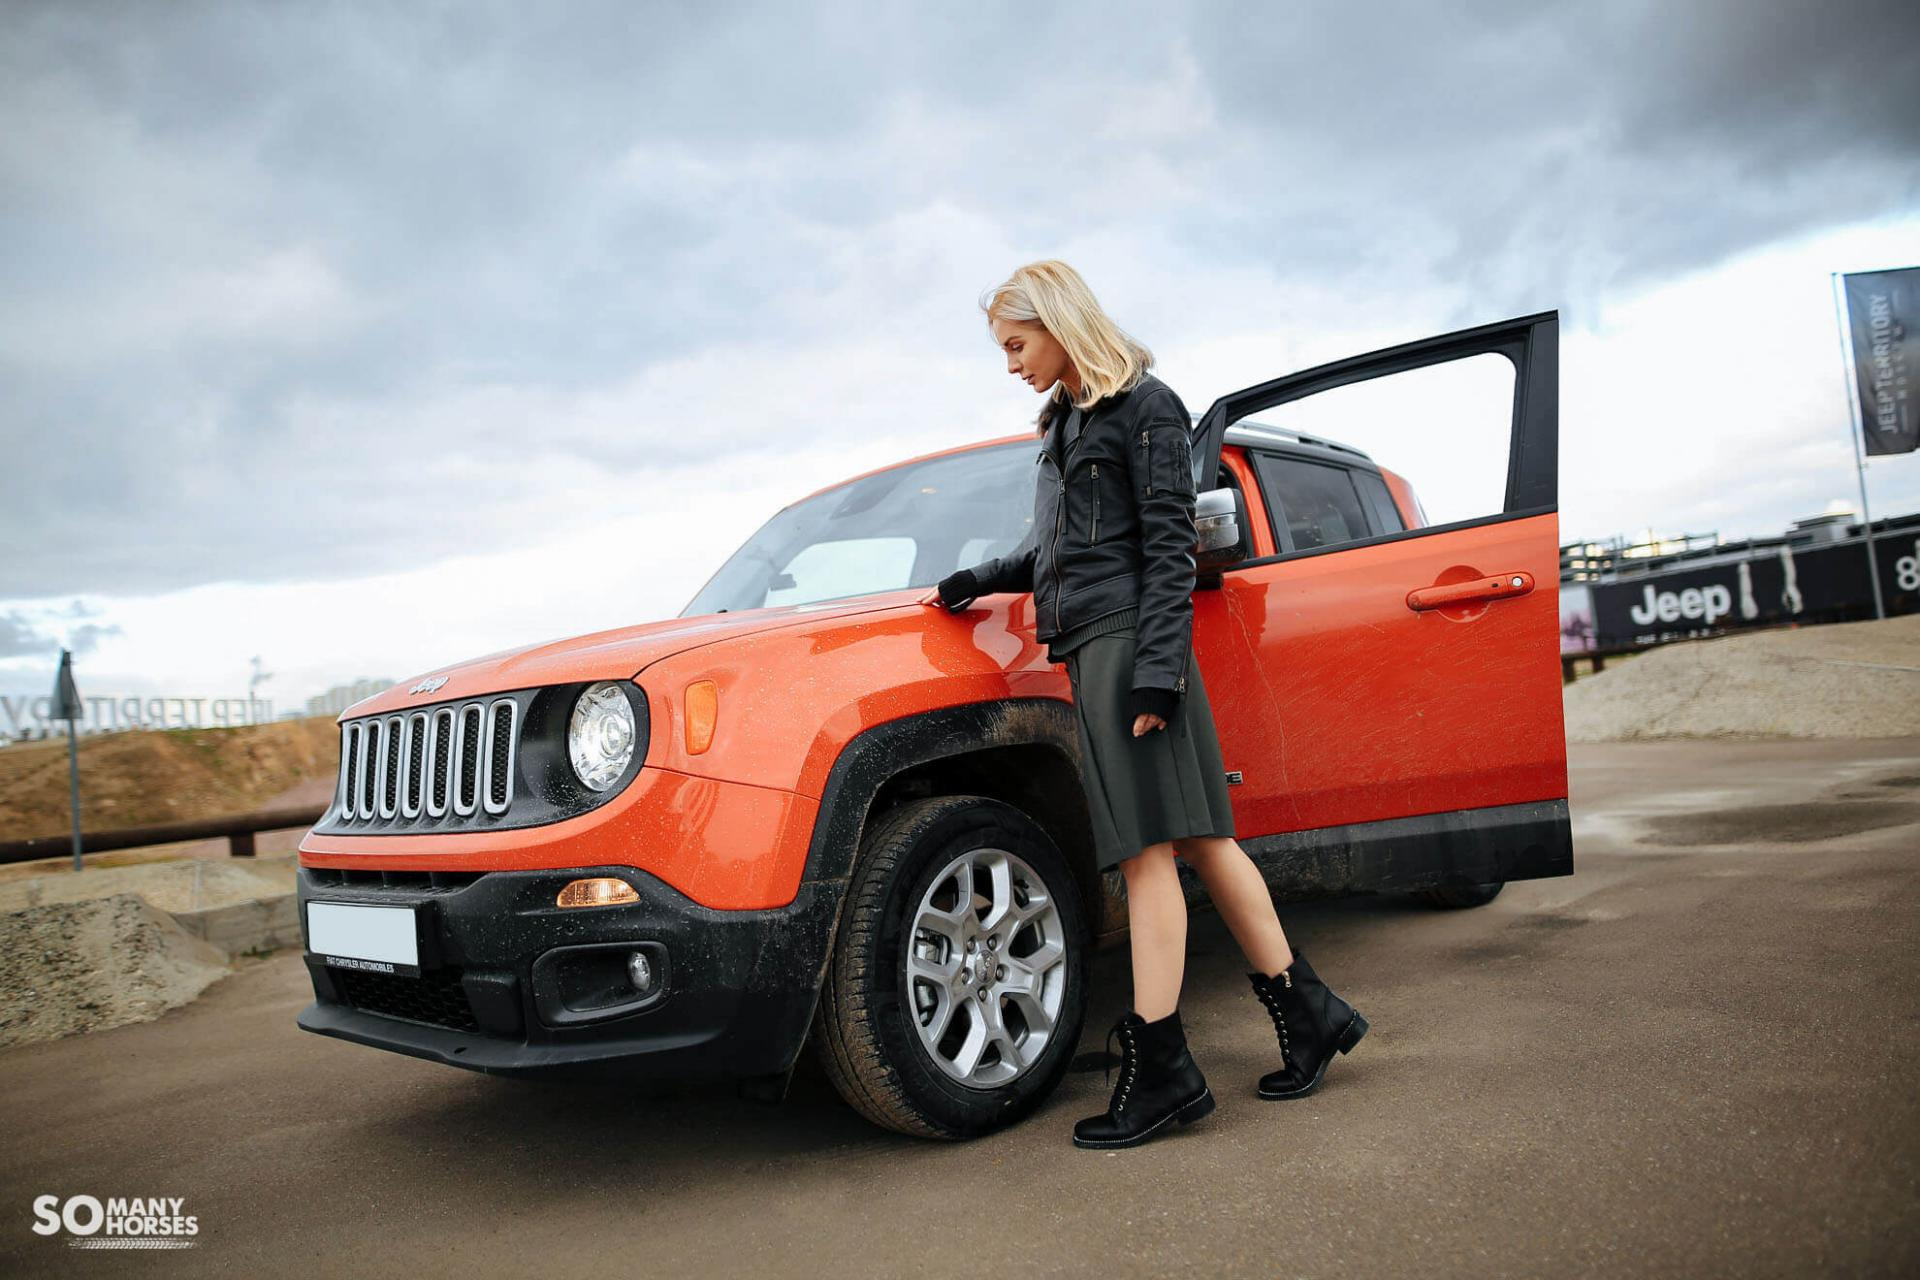 Тест-драйв Jeep Renegade: всем хорош